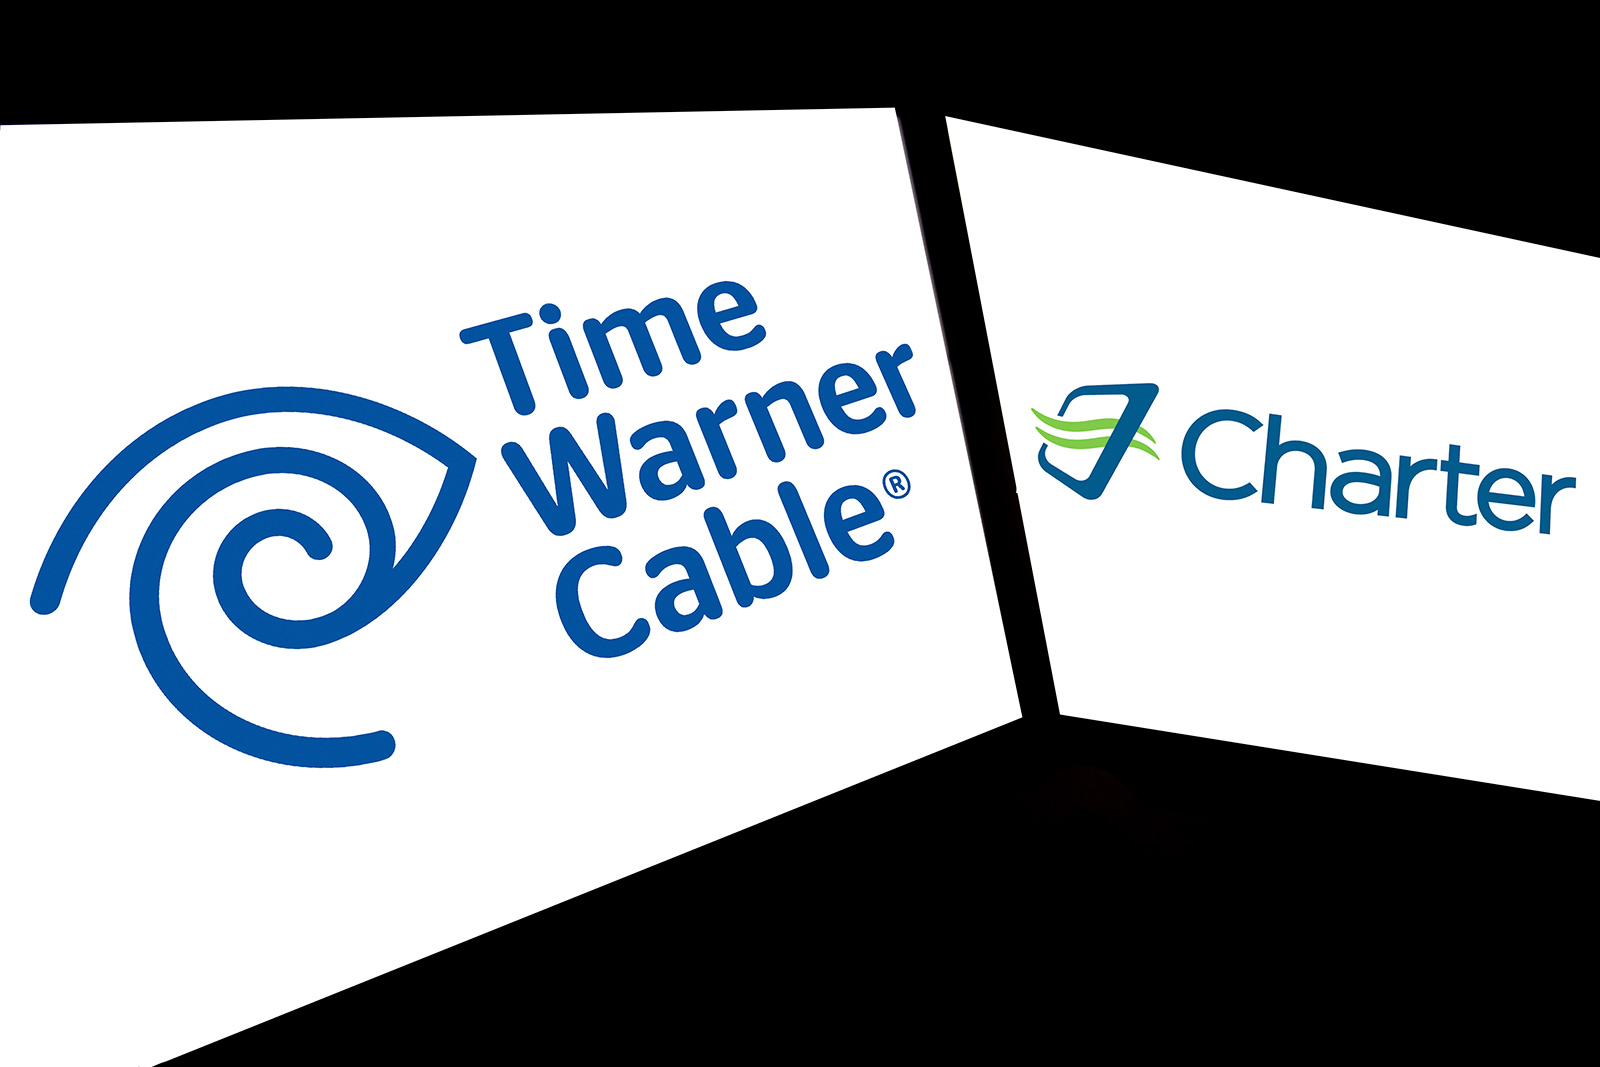 What S Next In The Cable Industry S Consolidation Thestreet